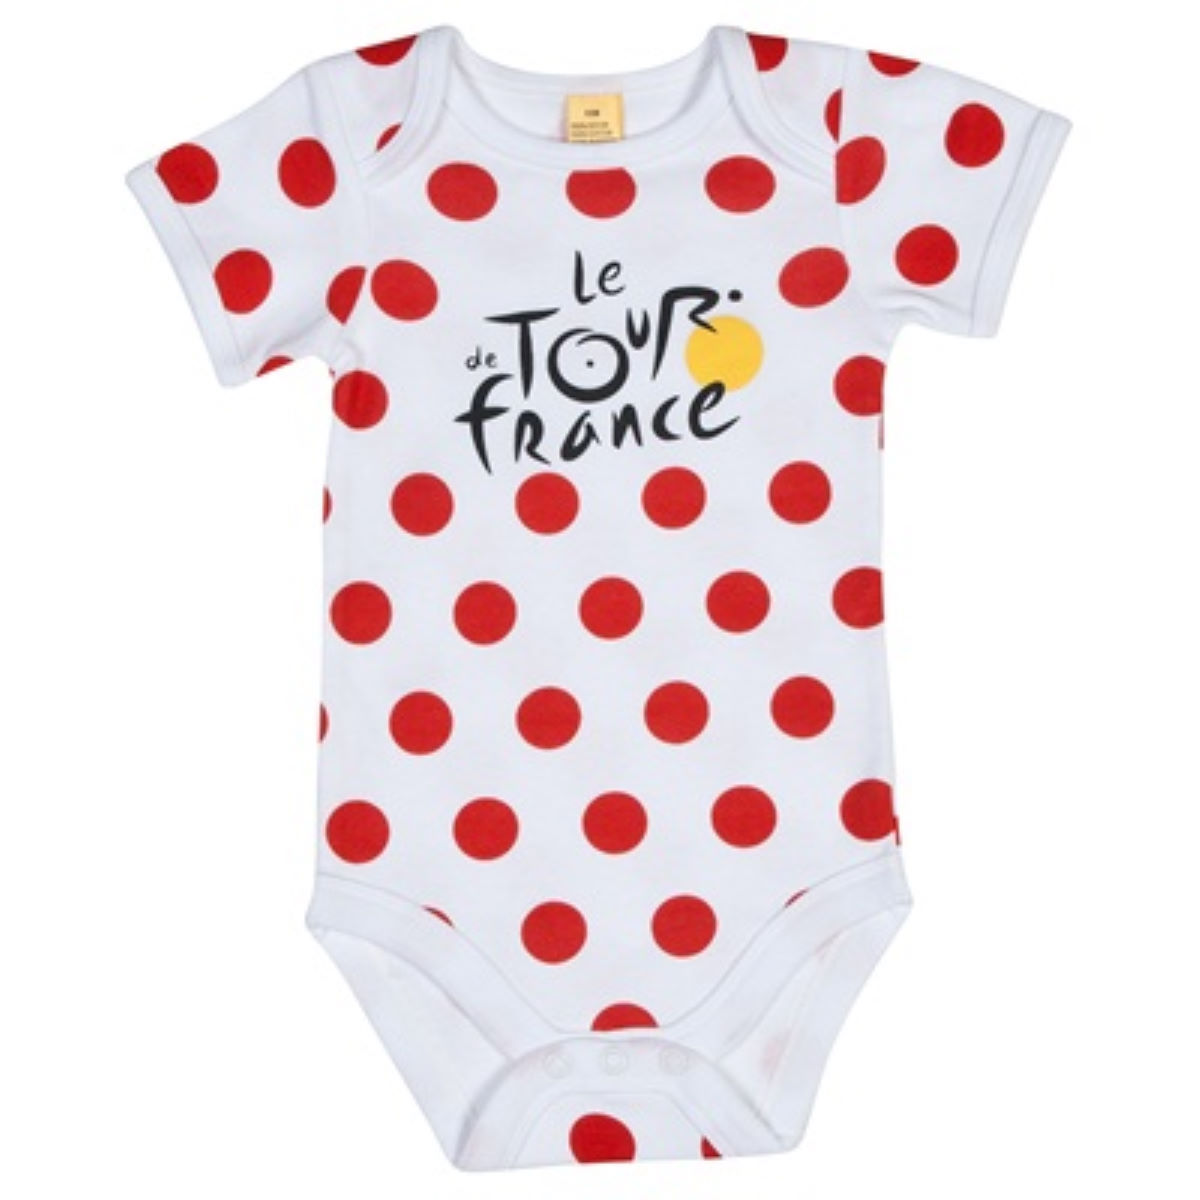 Body para bebé Tour de France 2016 (Lunares) - Camisetas